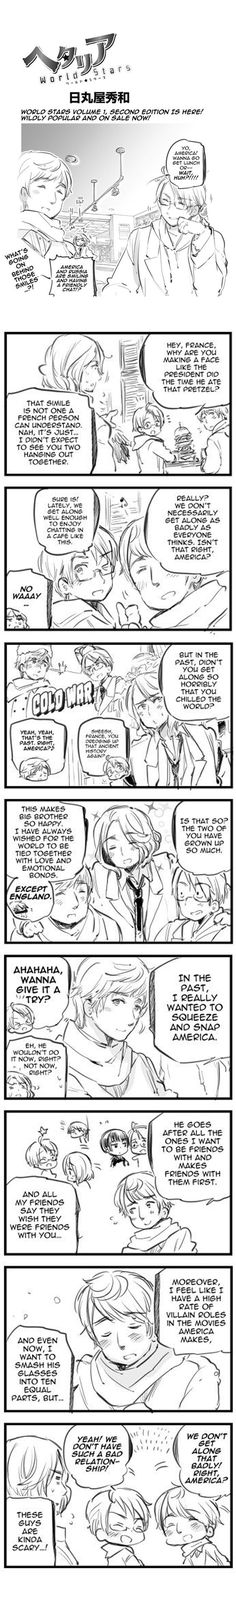 Tell me about it, France. Also, damn, now I ship it. (Still love USUK tho... and FrUK)... I have too many conflicting ships in this fandom.